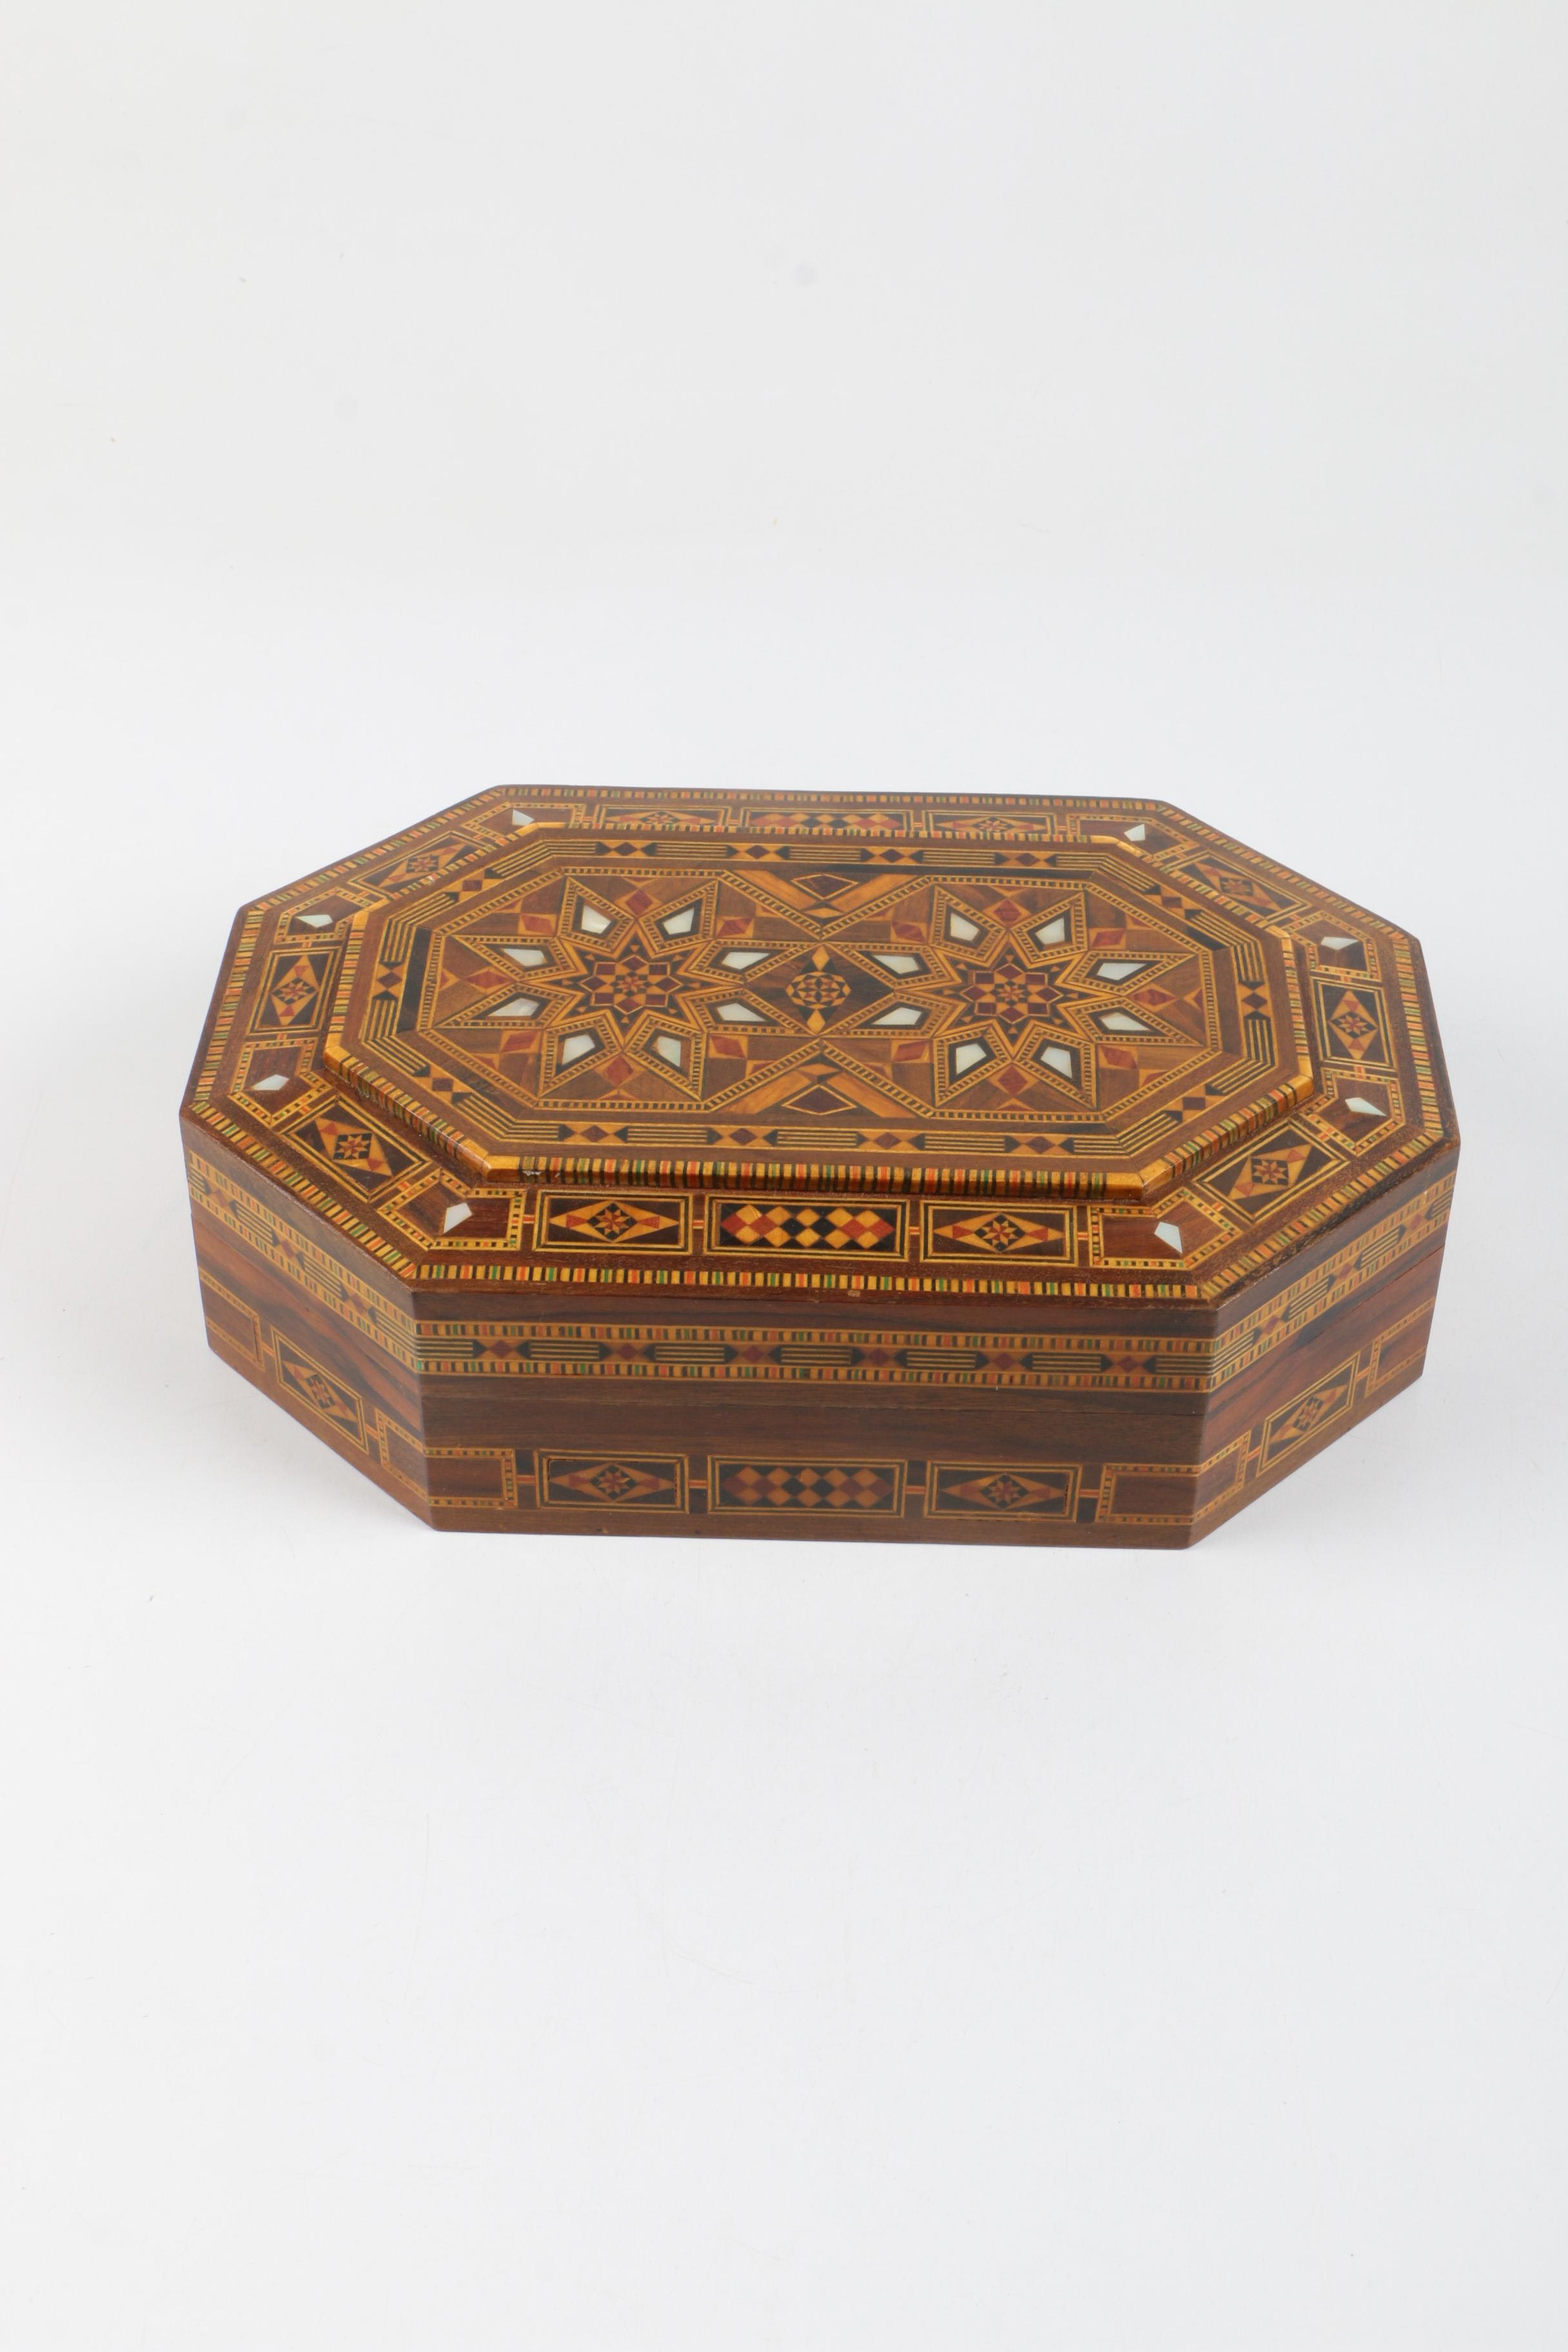 Moroccan Wood Box with Mother of Pearl Inlay